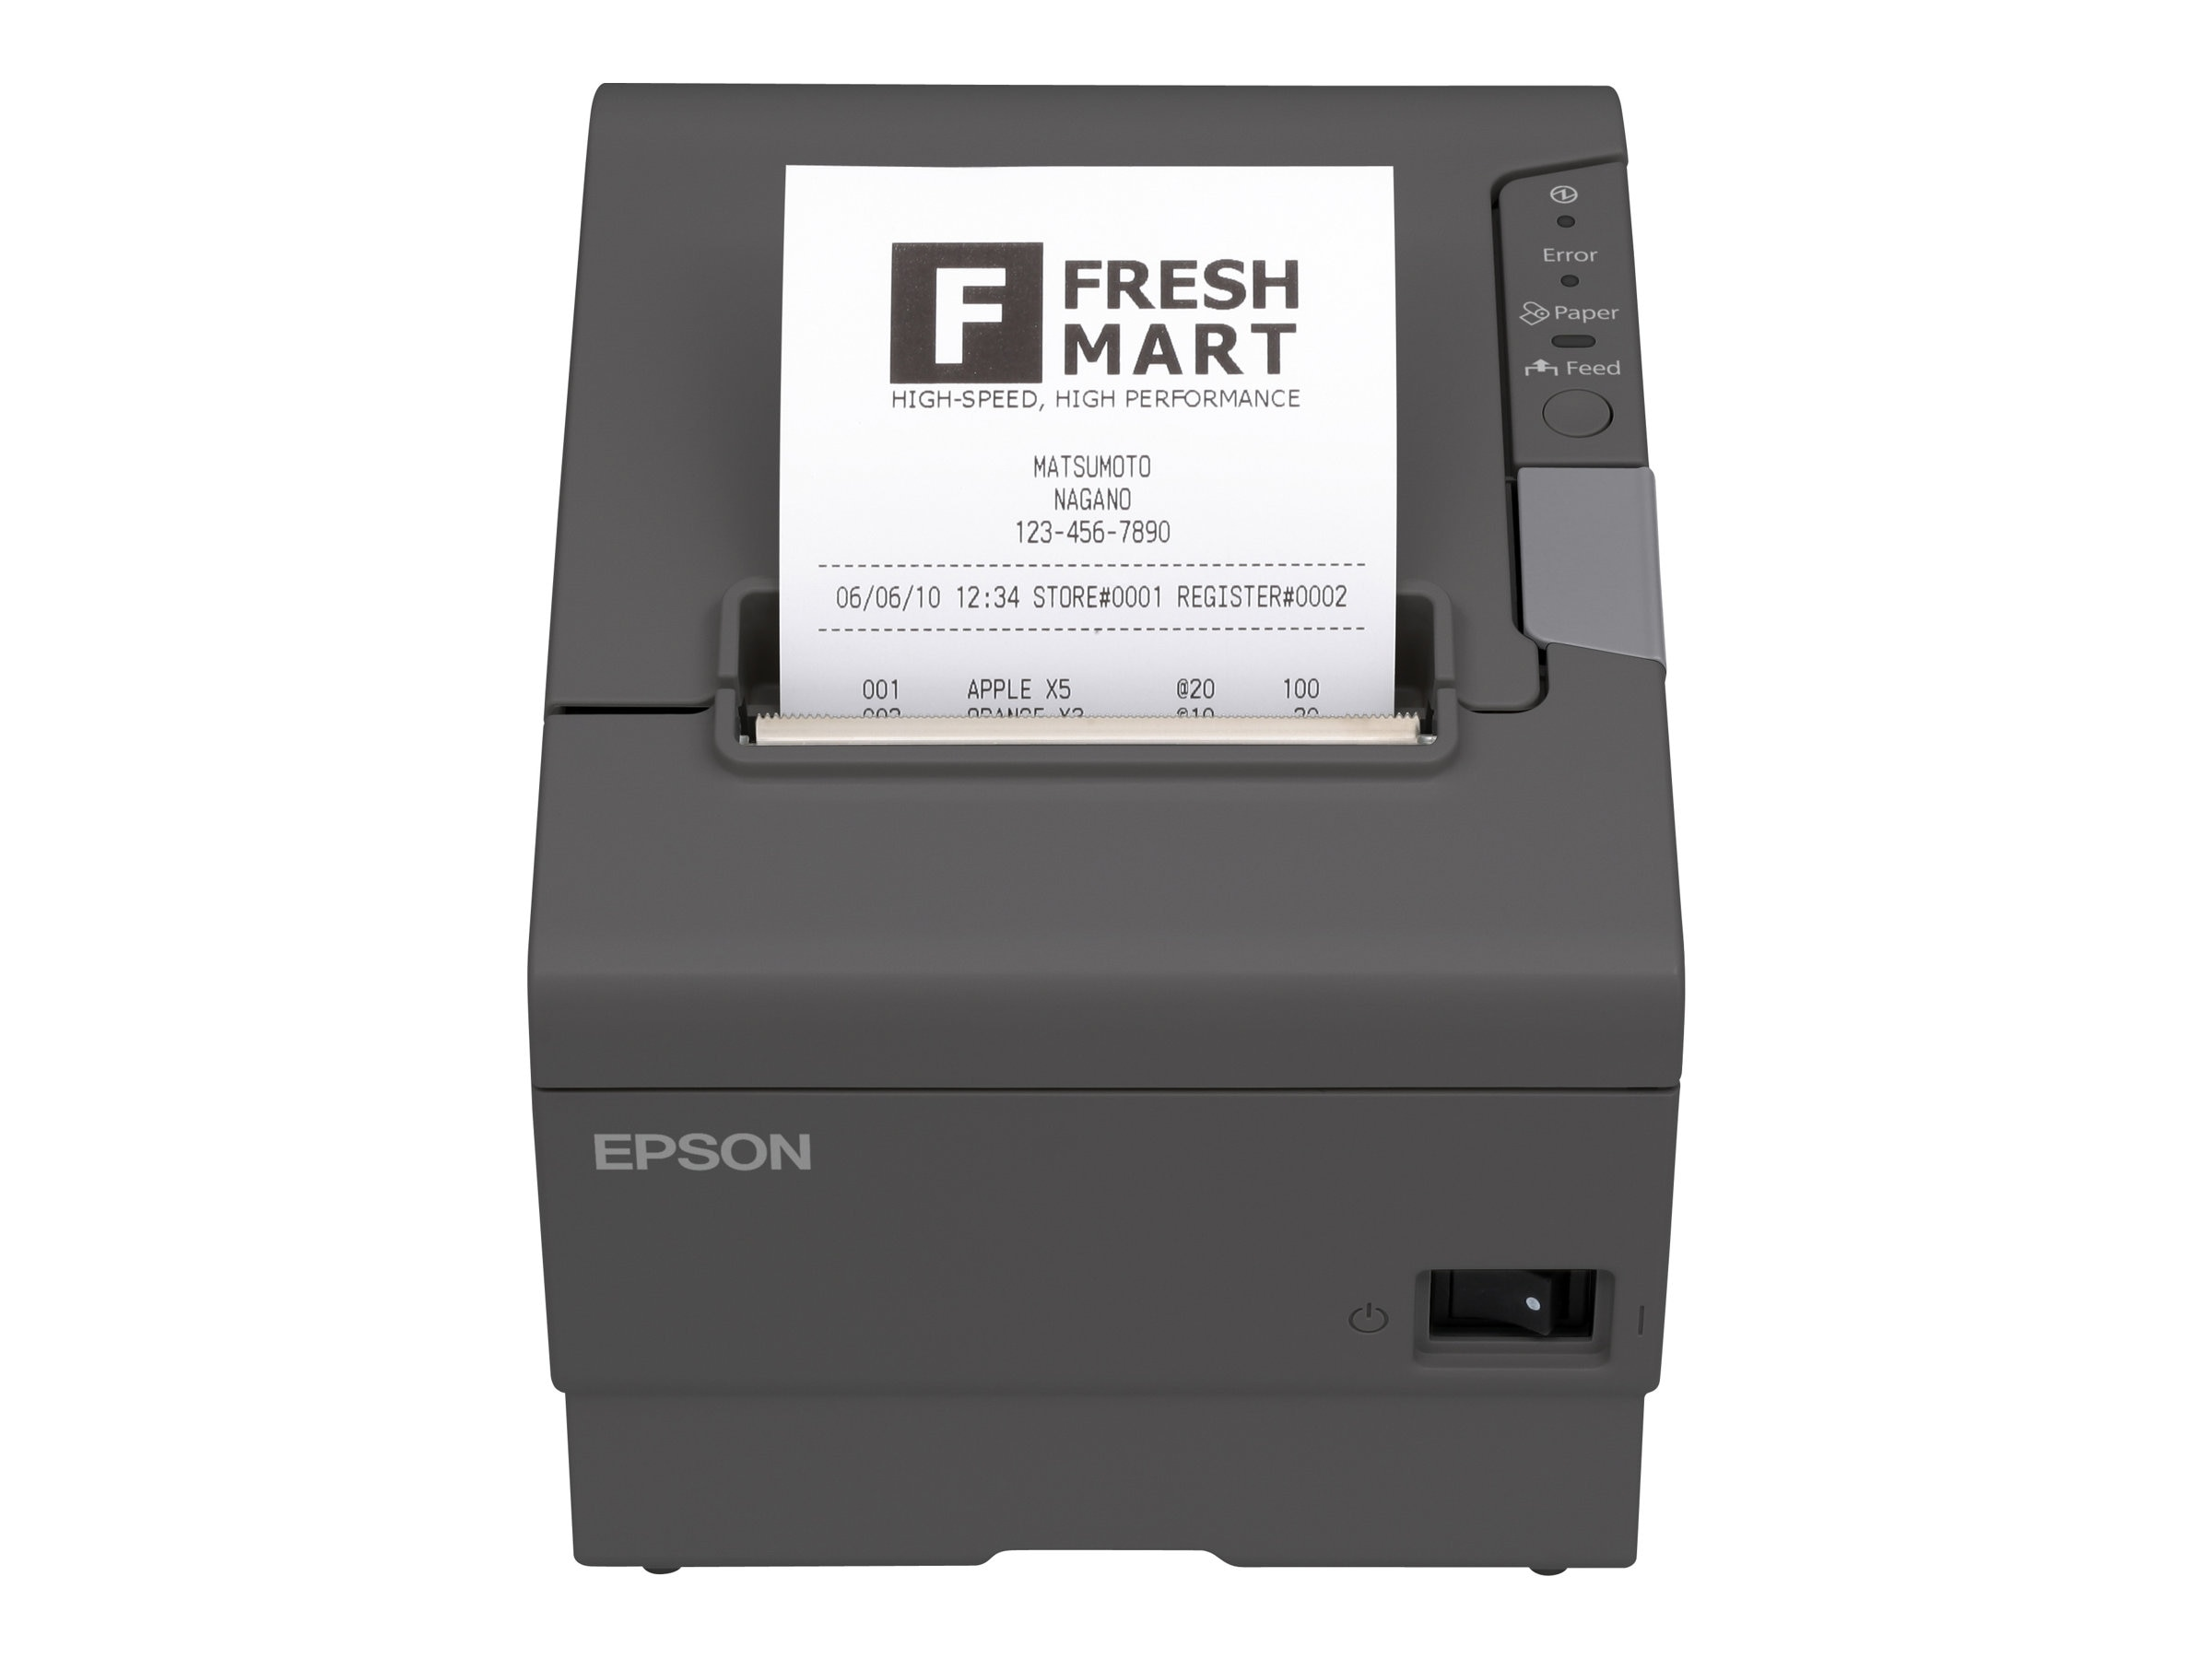 Epson TM-T88V-690 USB DB-9 + USB Edge Printer w  Power Supply, C31CA85A8690